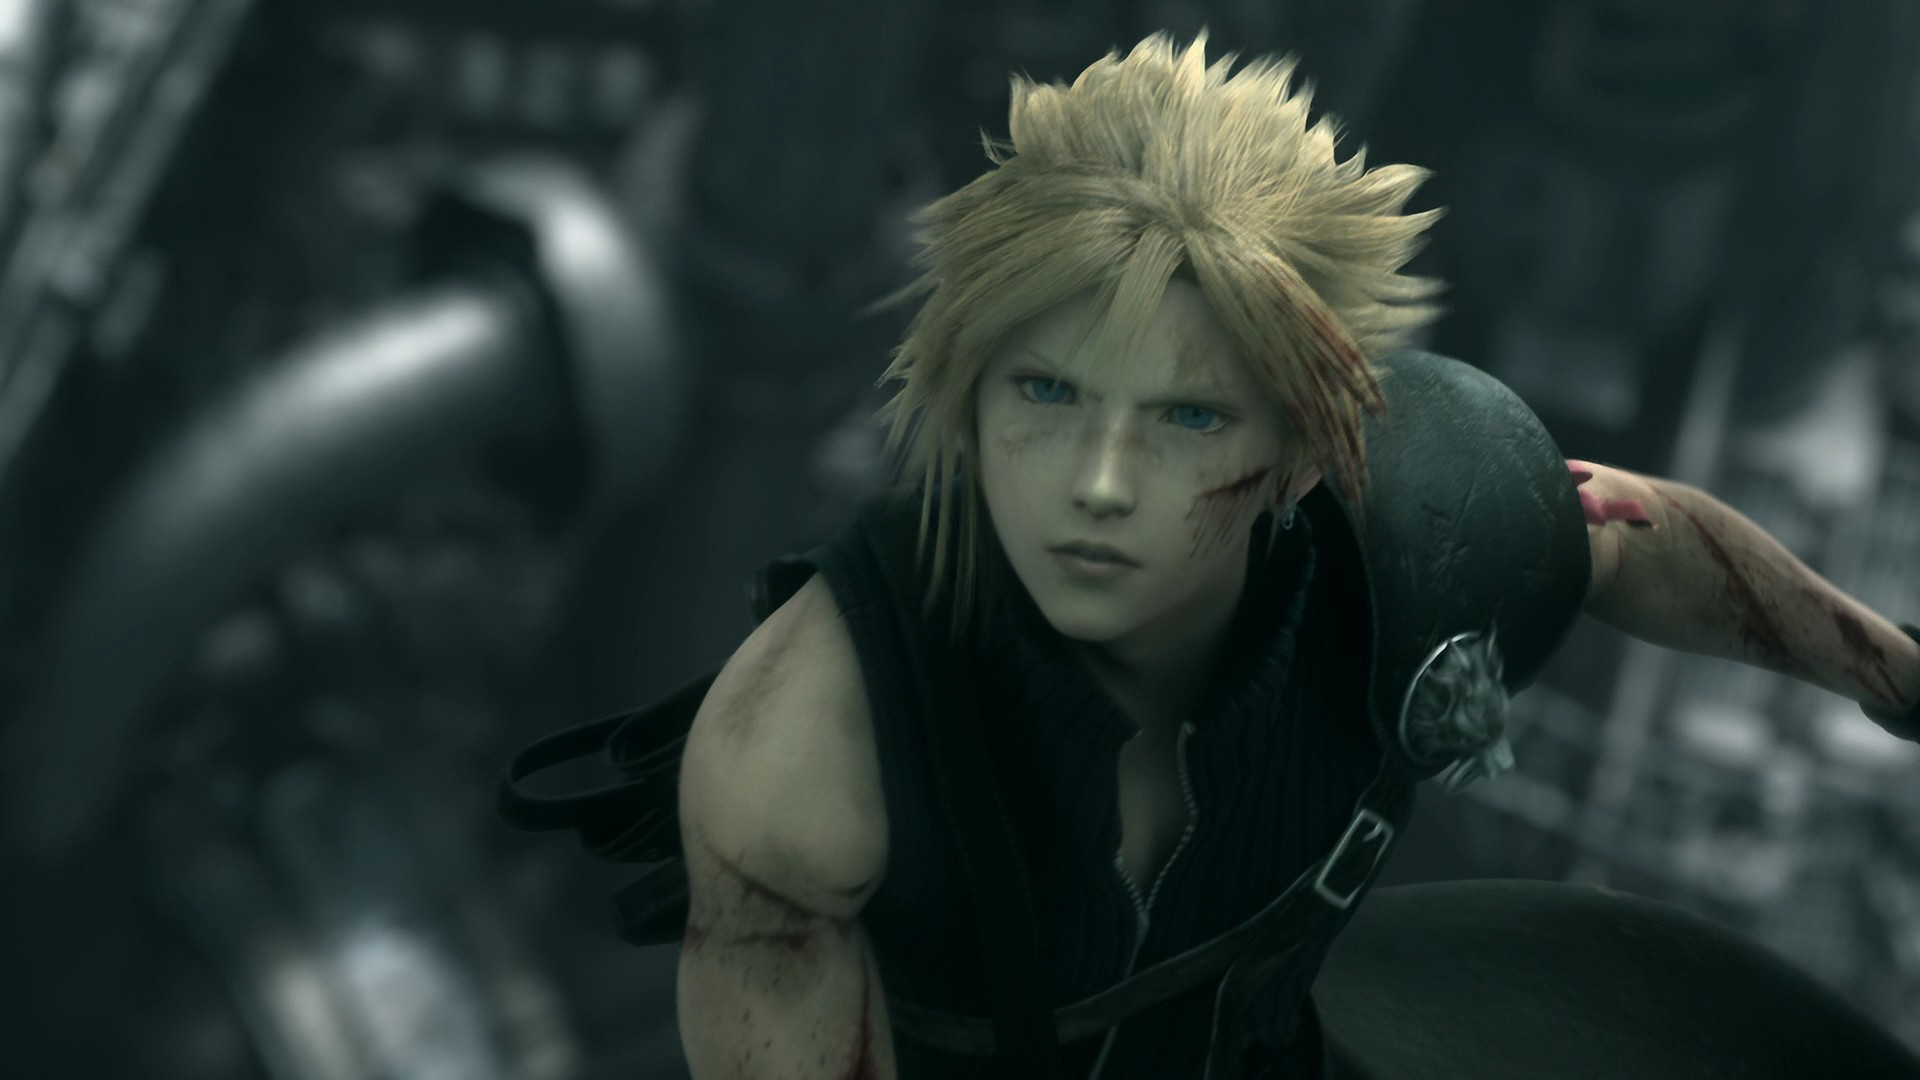 60 Cloud Strife Wallpapers On Wallpaperplay Final Fantasy